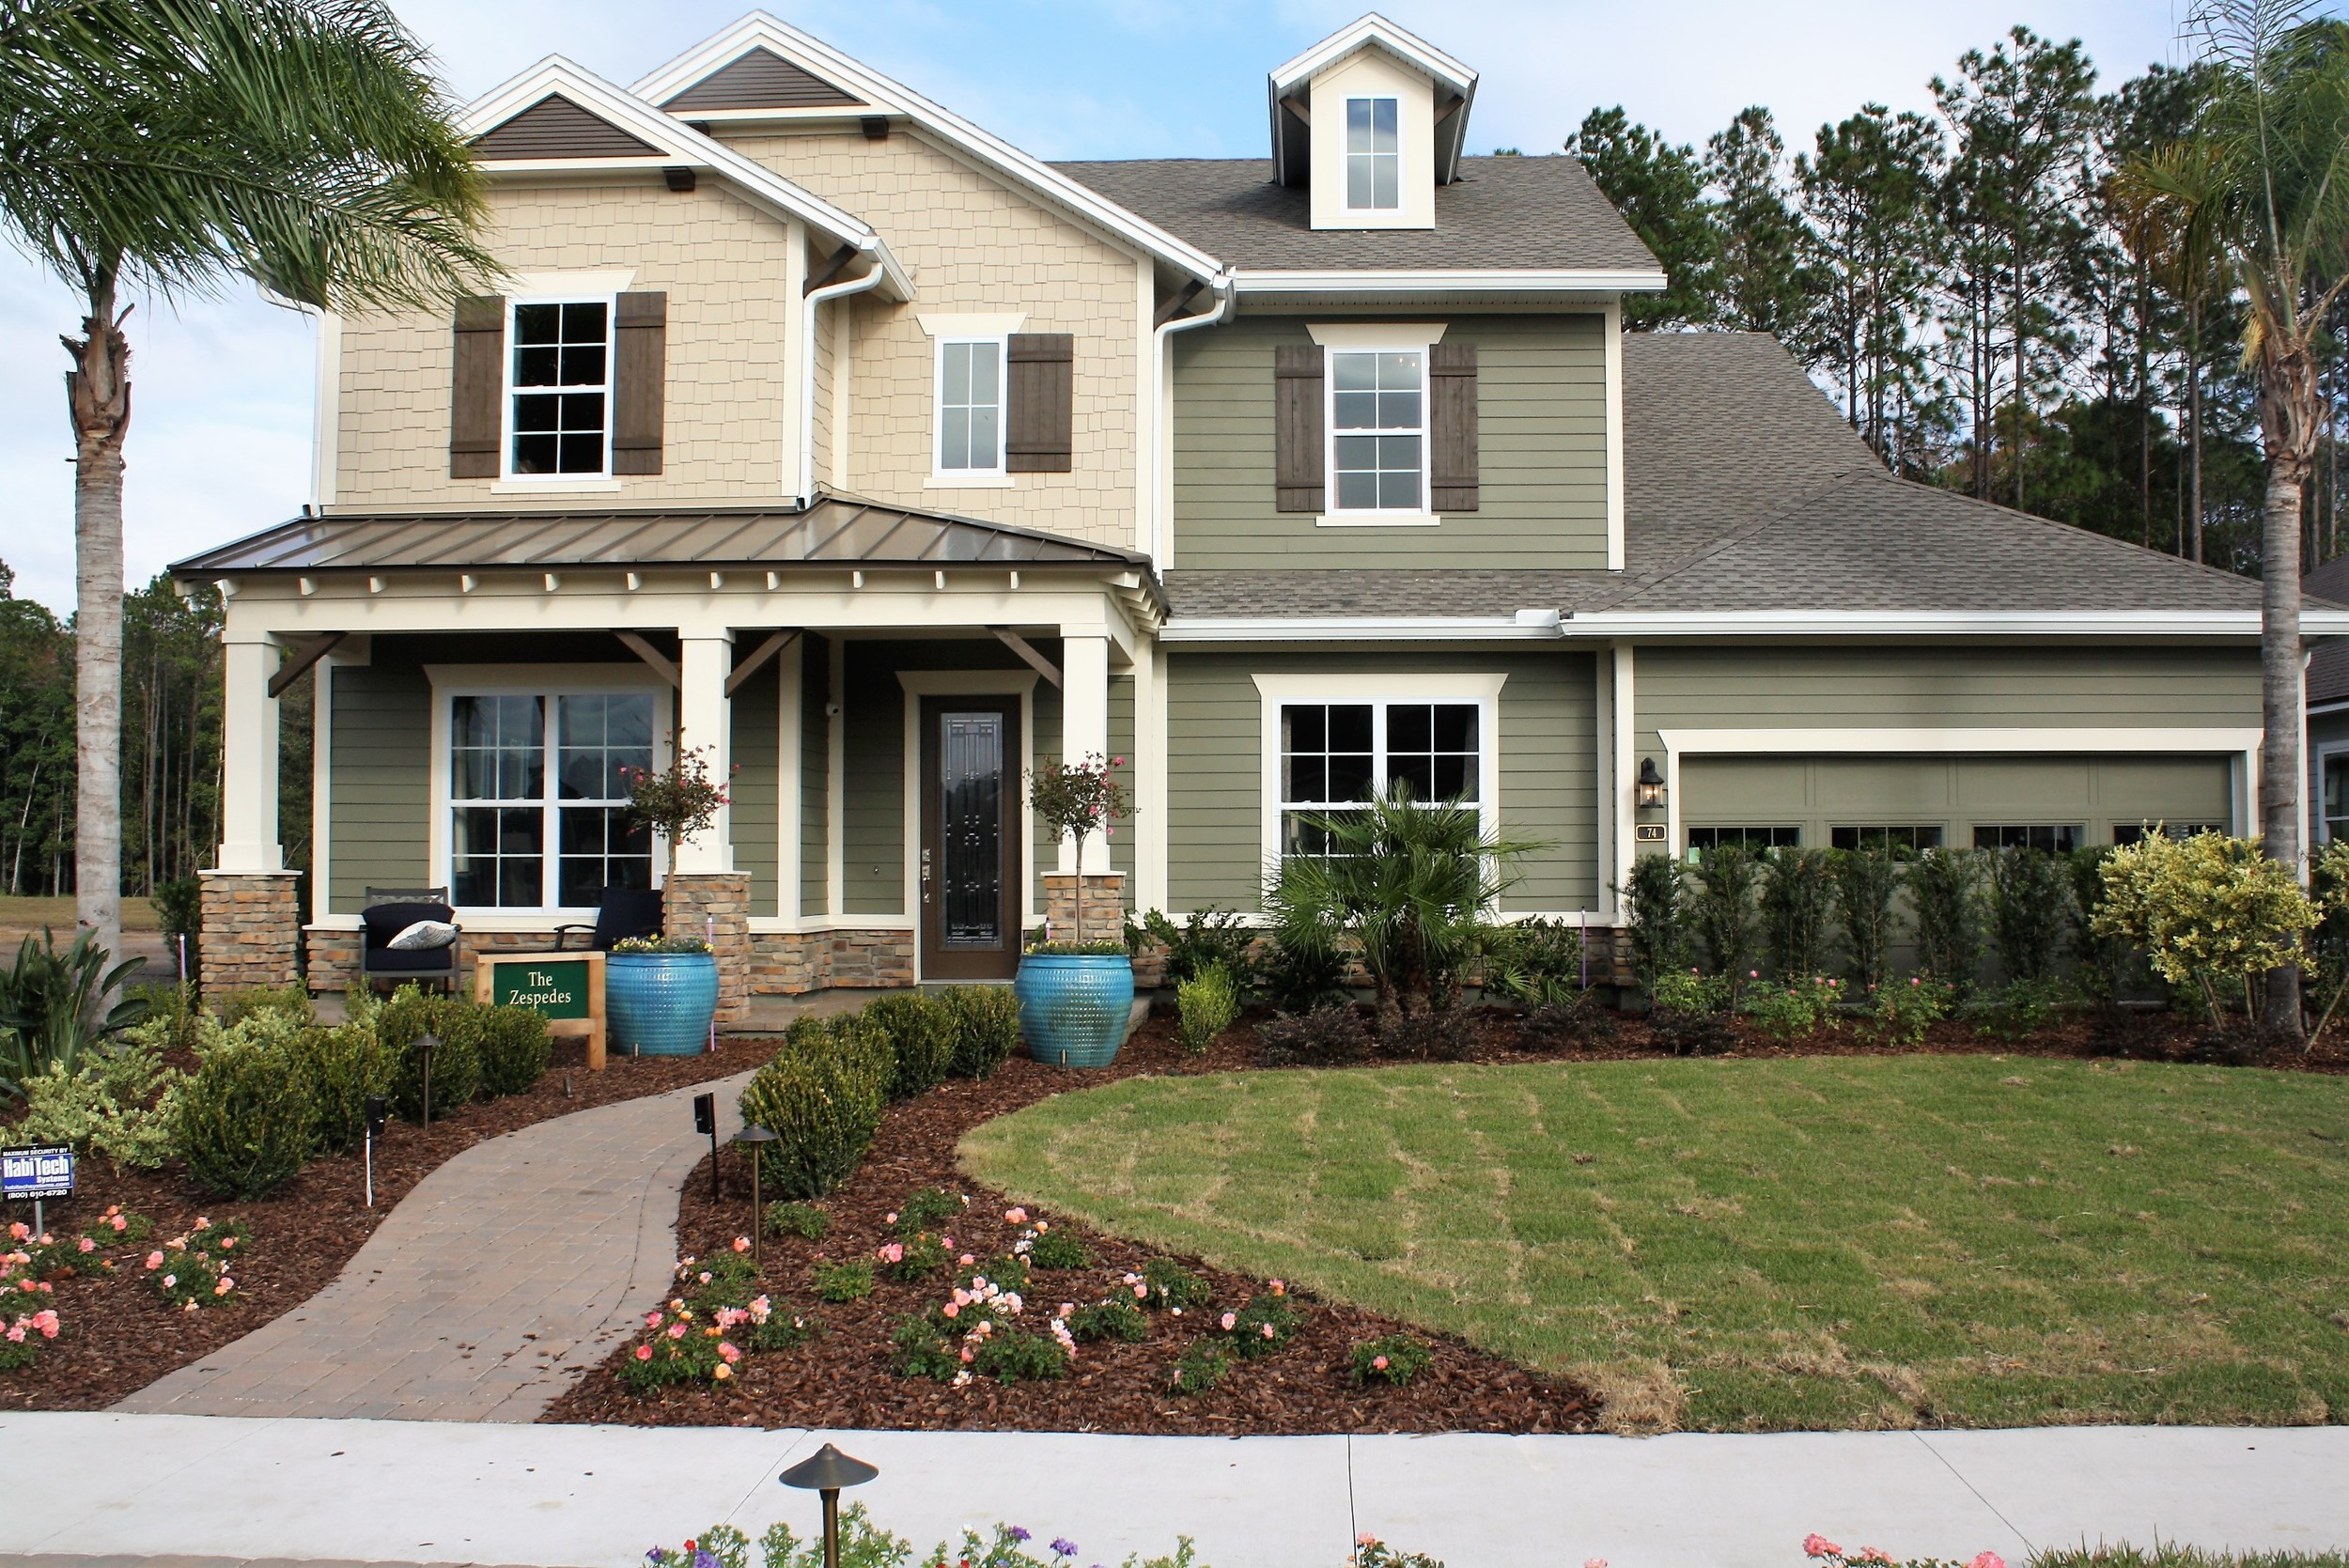 Nocatee offerings: Home buyers can choose from dozens of distinct neighborhoods and home styles, like this home in Nocatee's Twenty Mile community.